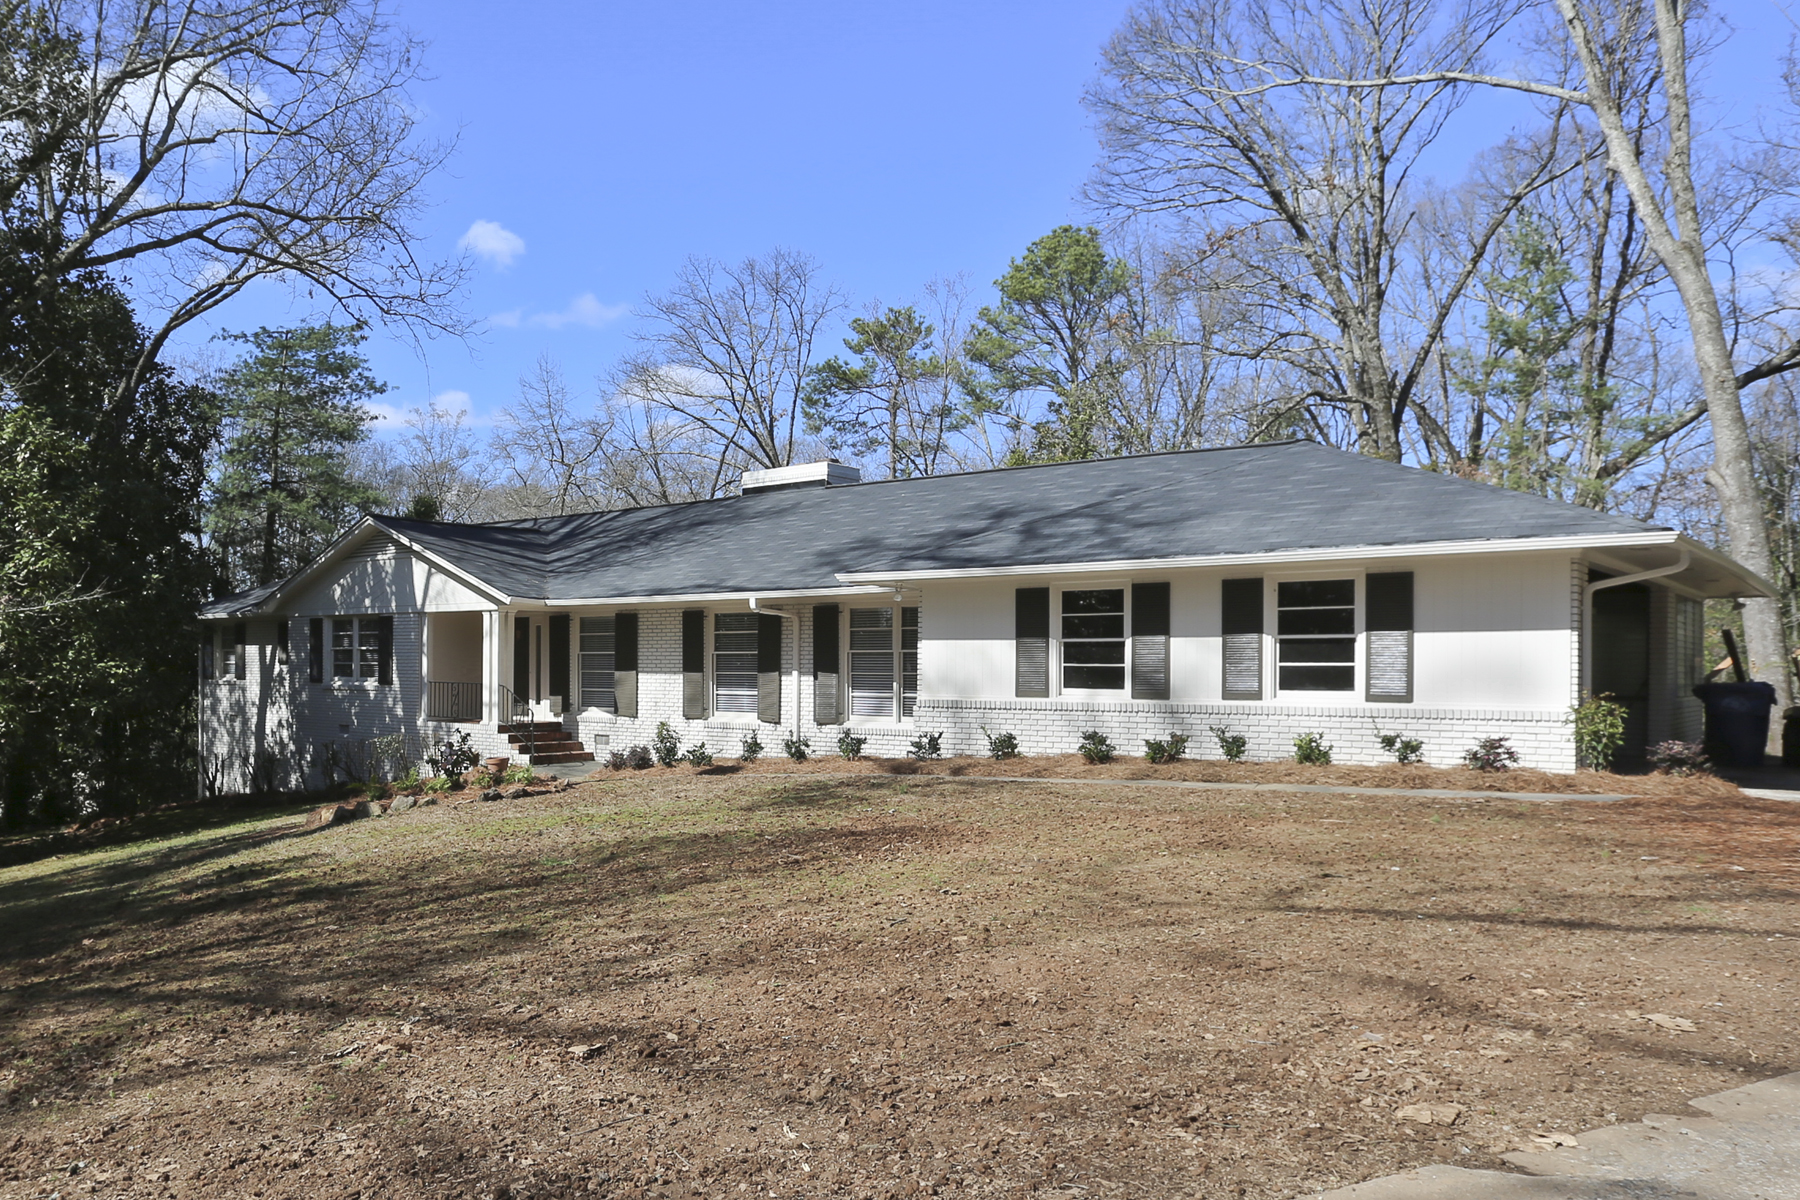 Single Family Home for Rent at Completely Renovated Ranch Home 1195 Mount Paran Road NW Atlanta, Georgia 30327 United States